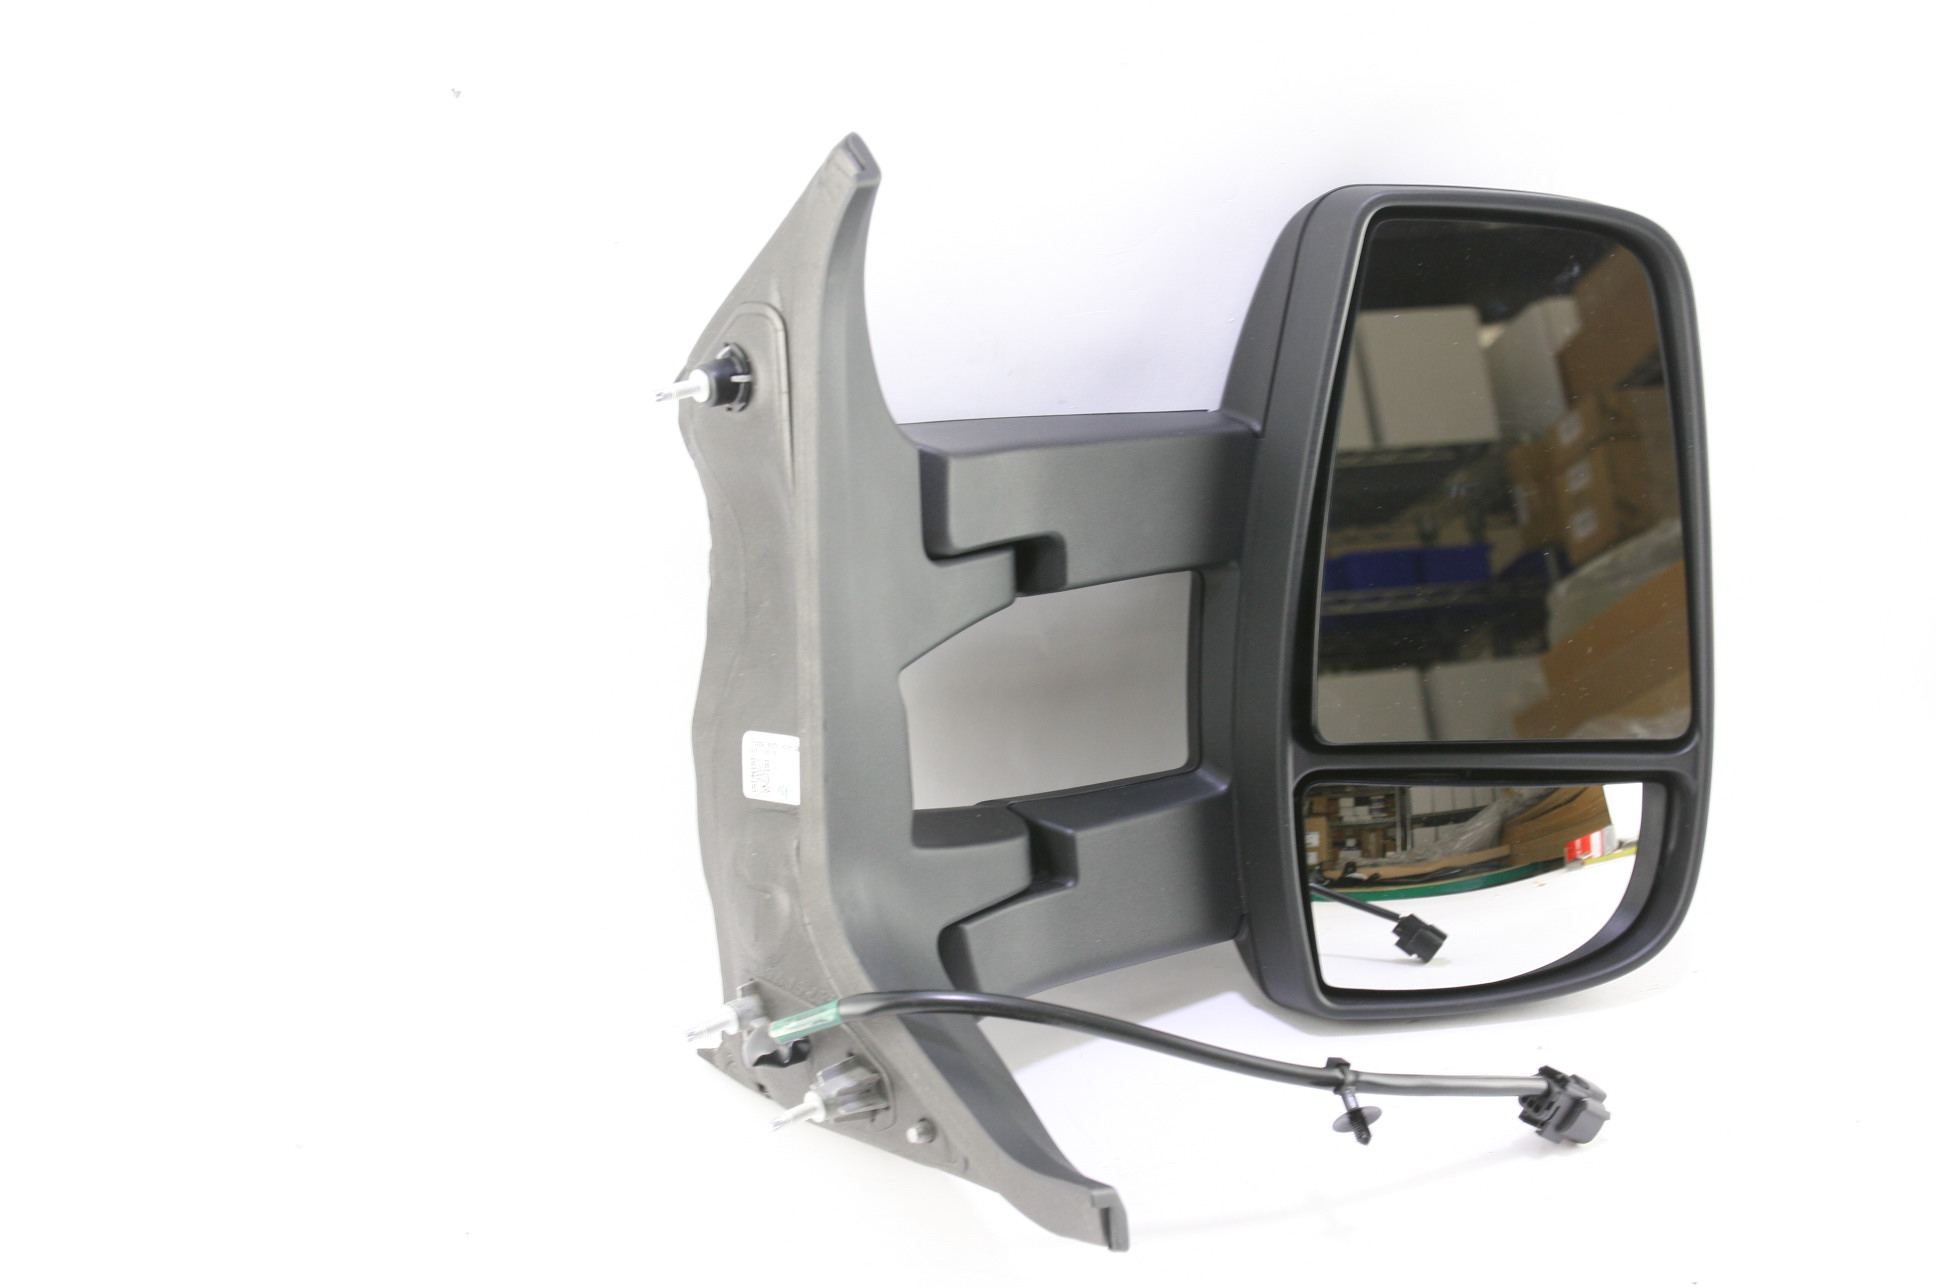 **** New OEM CK4Z17682HA 15-16 Transit 150 Door Side Rear View Mirror Assy Right - image 5